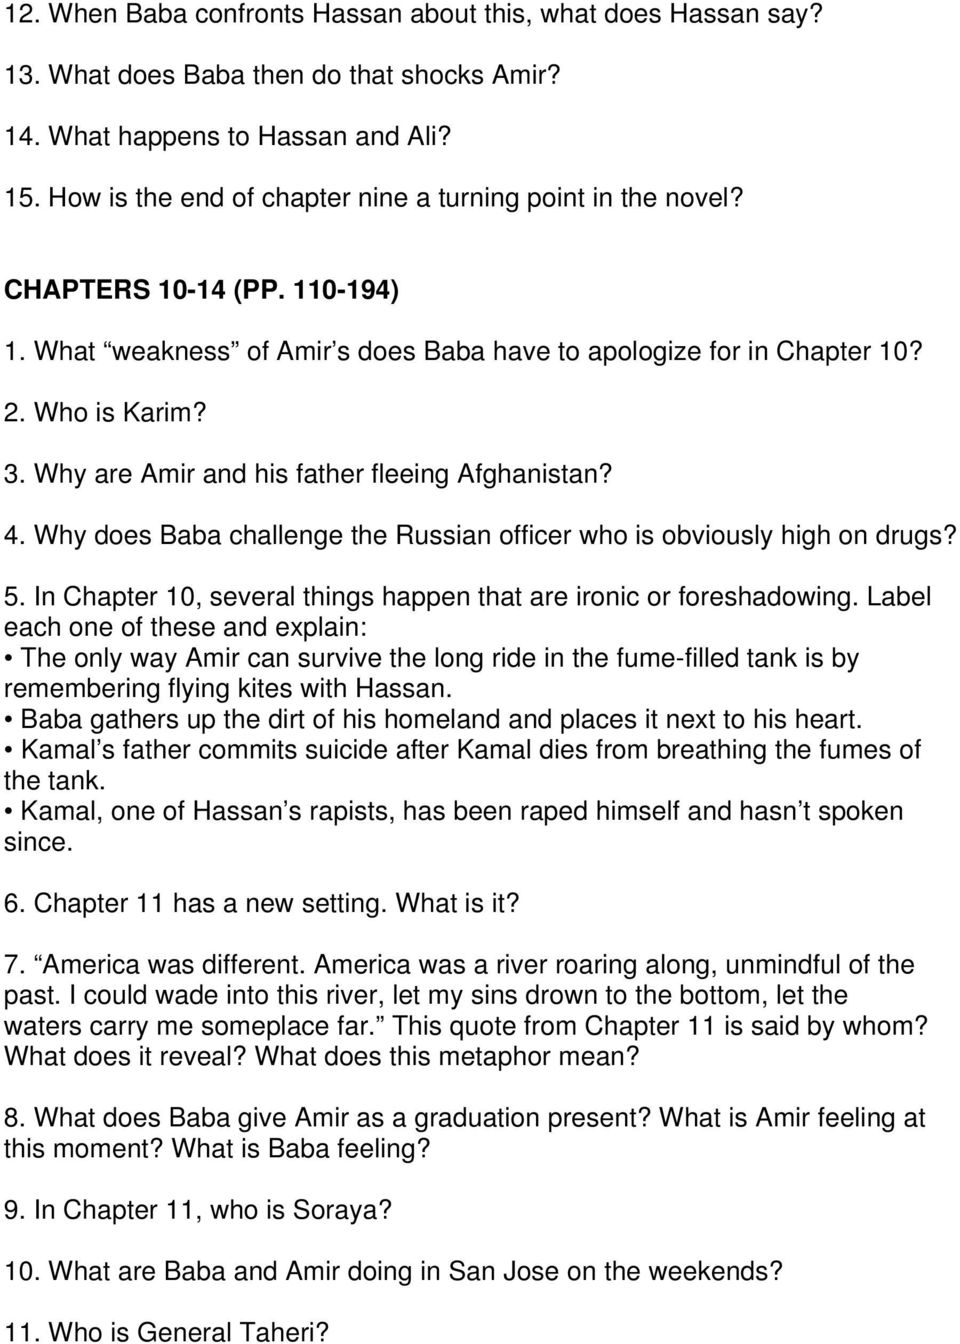 worksheet Foreshadowing Worksheet 1 the novel begins with a flashback what do you think is its why are amir and his father fleeing afghanistan 4 does baba challenge the